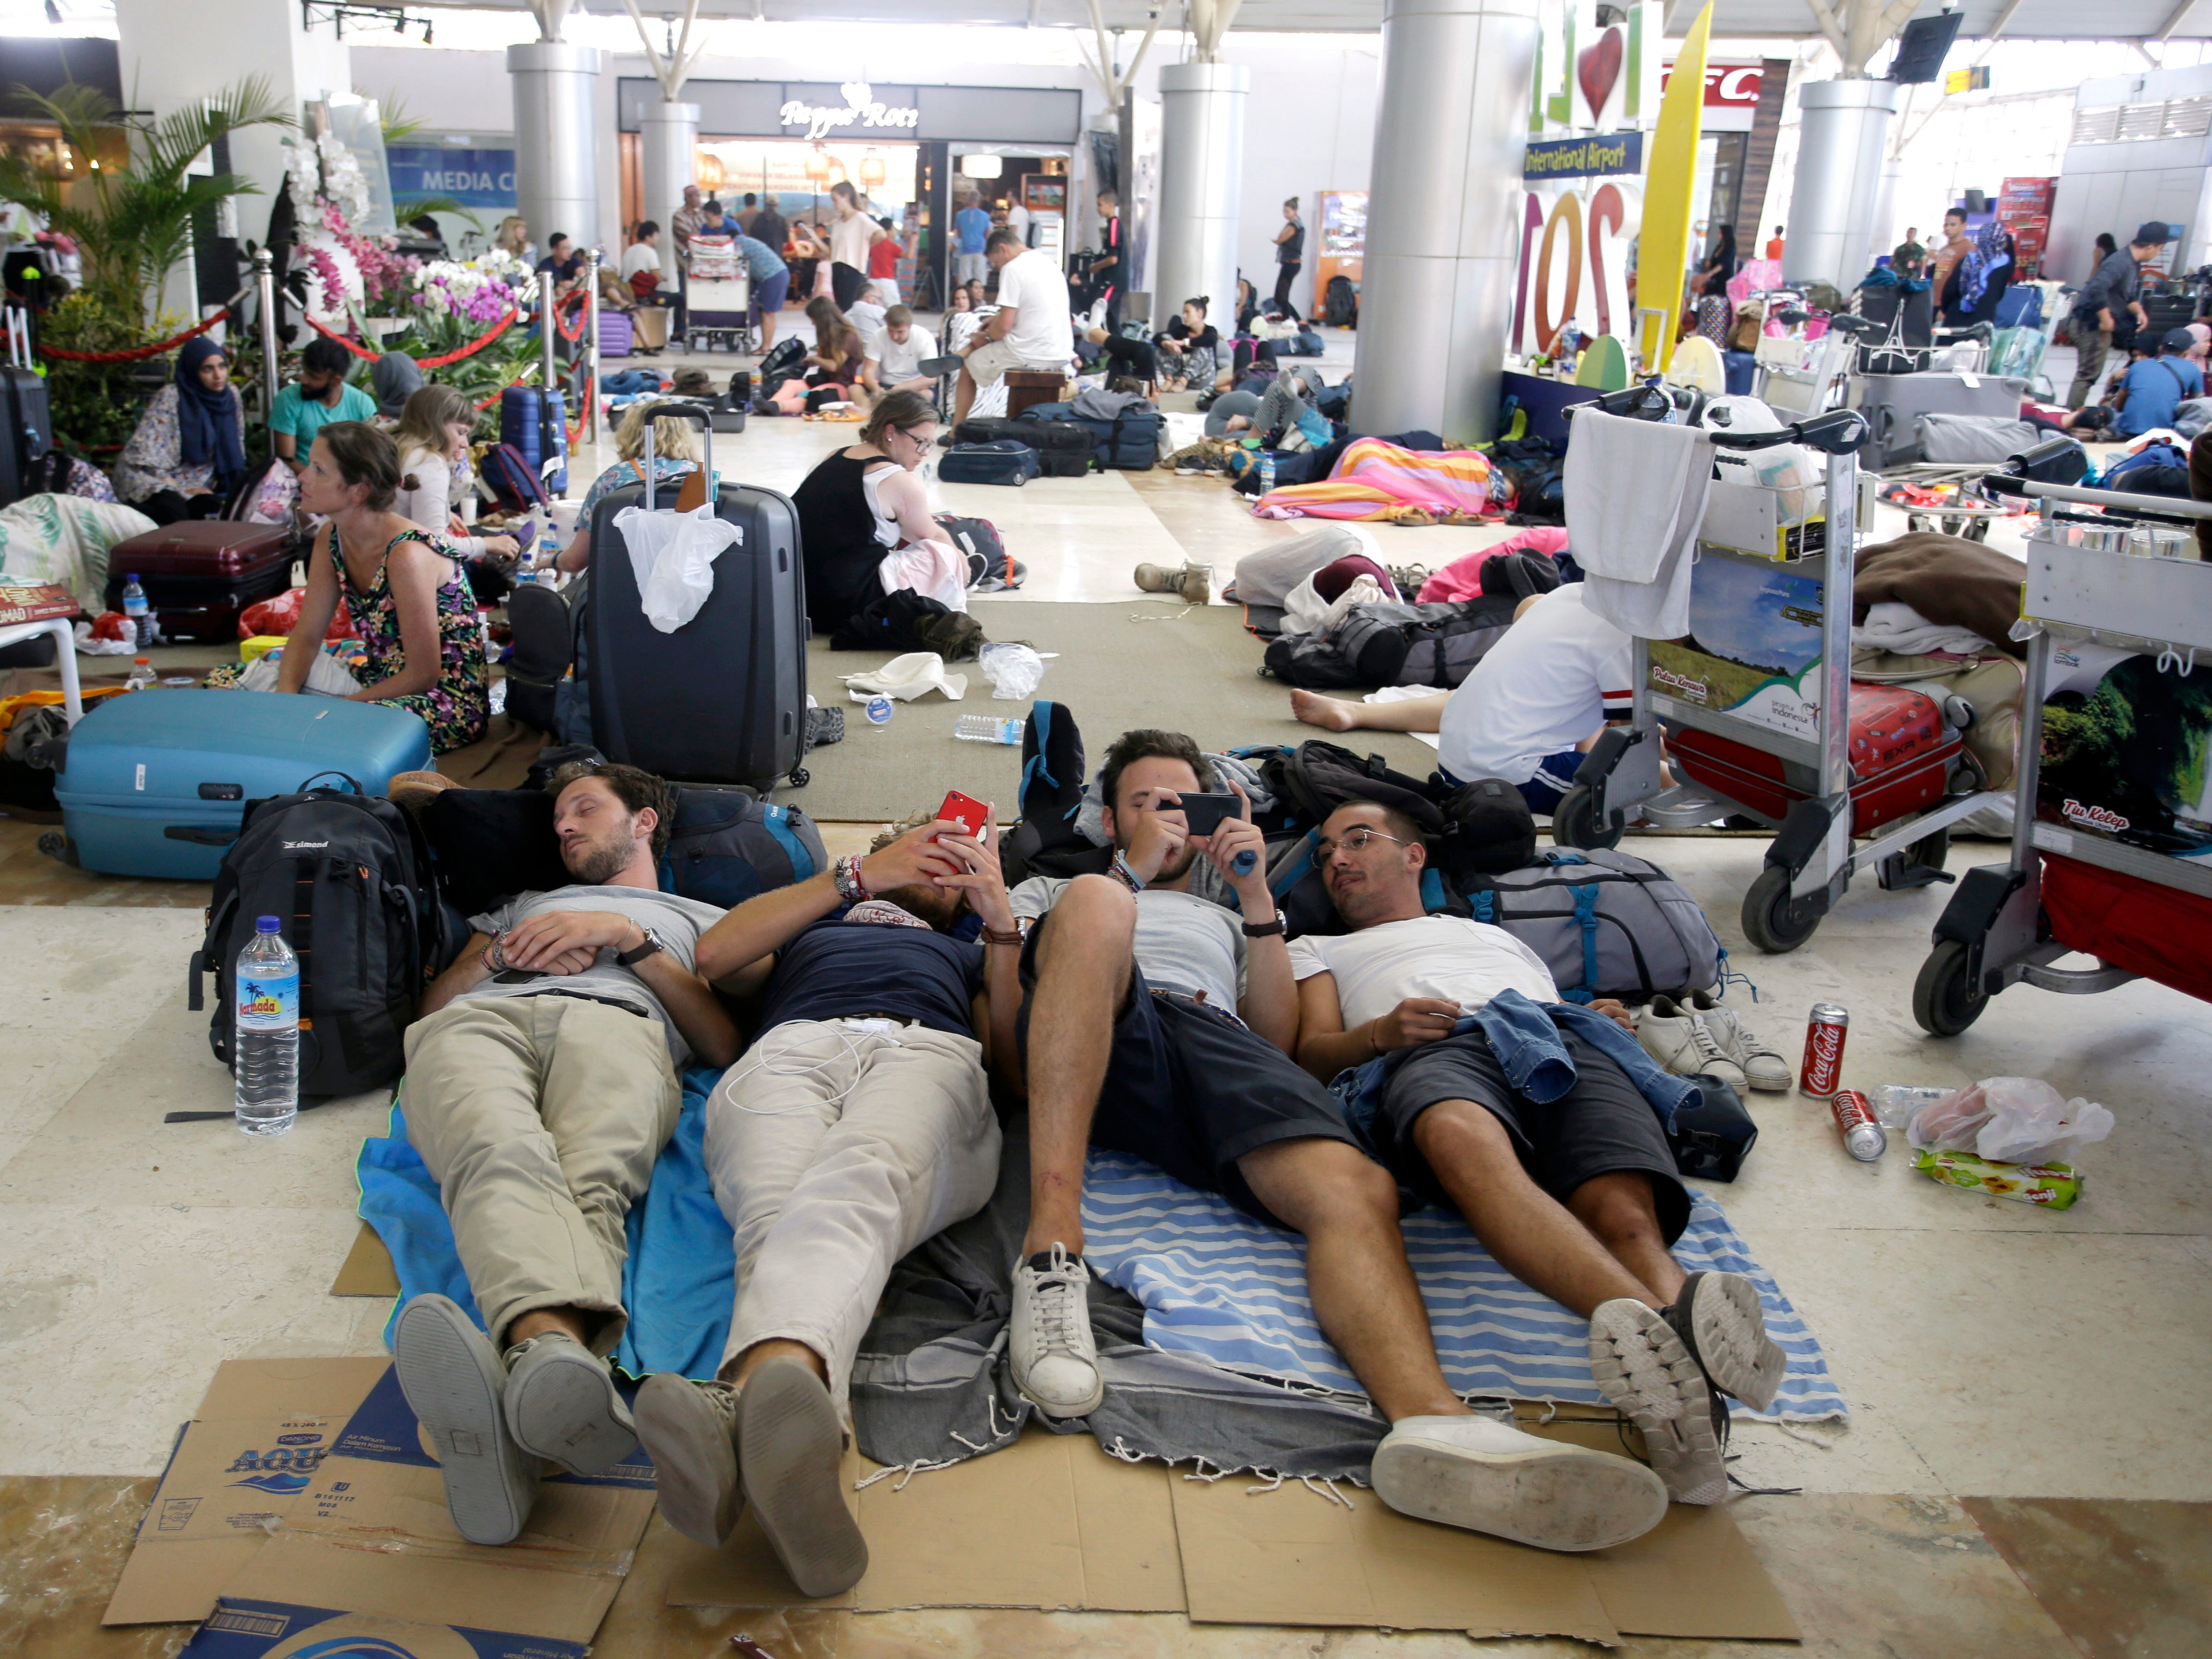 Foreign tourists rest on the floor while waiting for their flights at Lombok International Airport, following an earthquake in Praya, Lombok Island, Indonesia, Tuesday, Aug. 7, 2018.